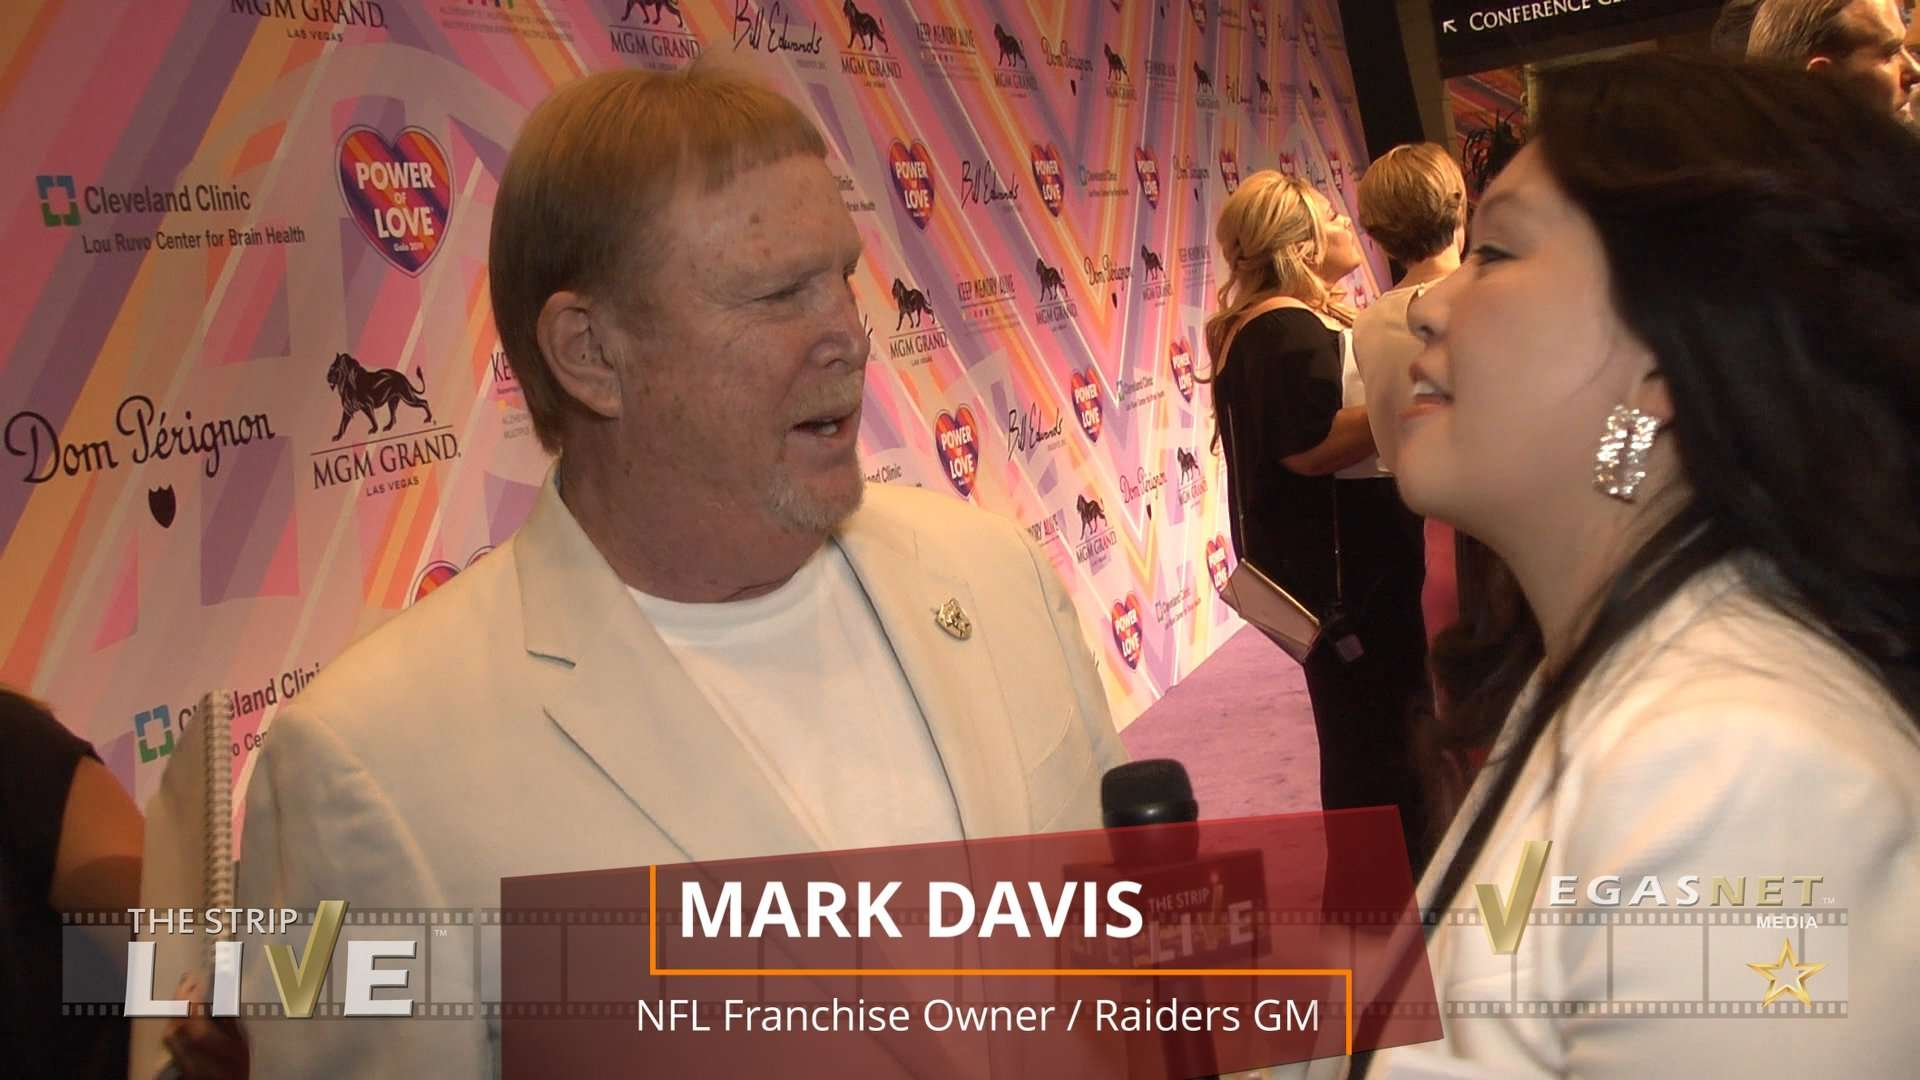 Mark Davis (showcase) on THE STRIP LIVE for VegasNET media